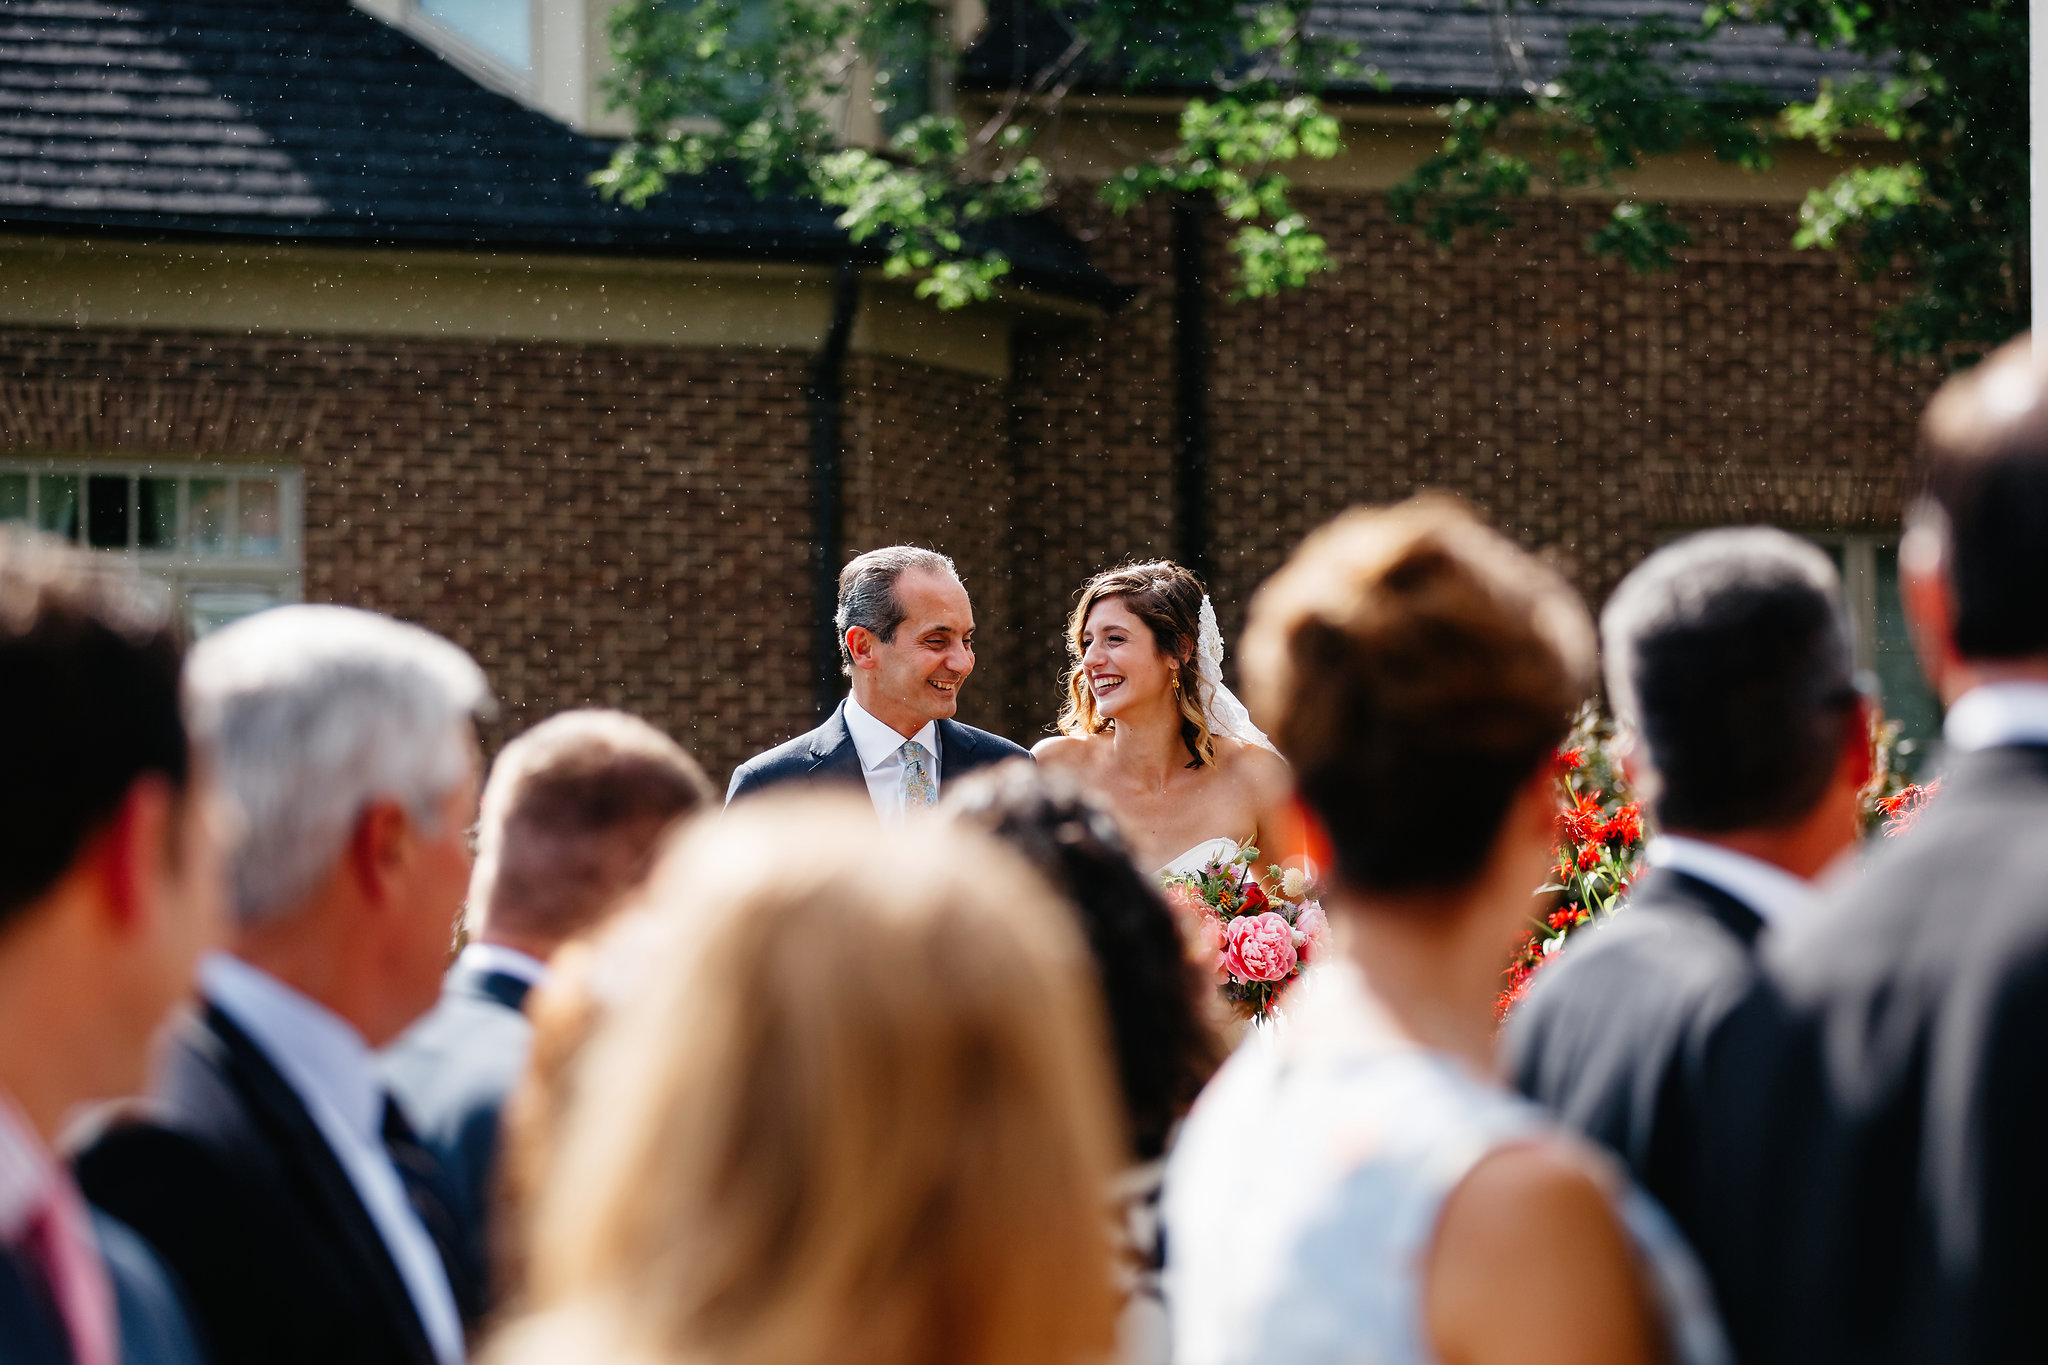 Maria&Dave2017-07-28at9.36.51AM106.jpg